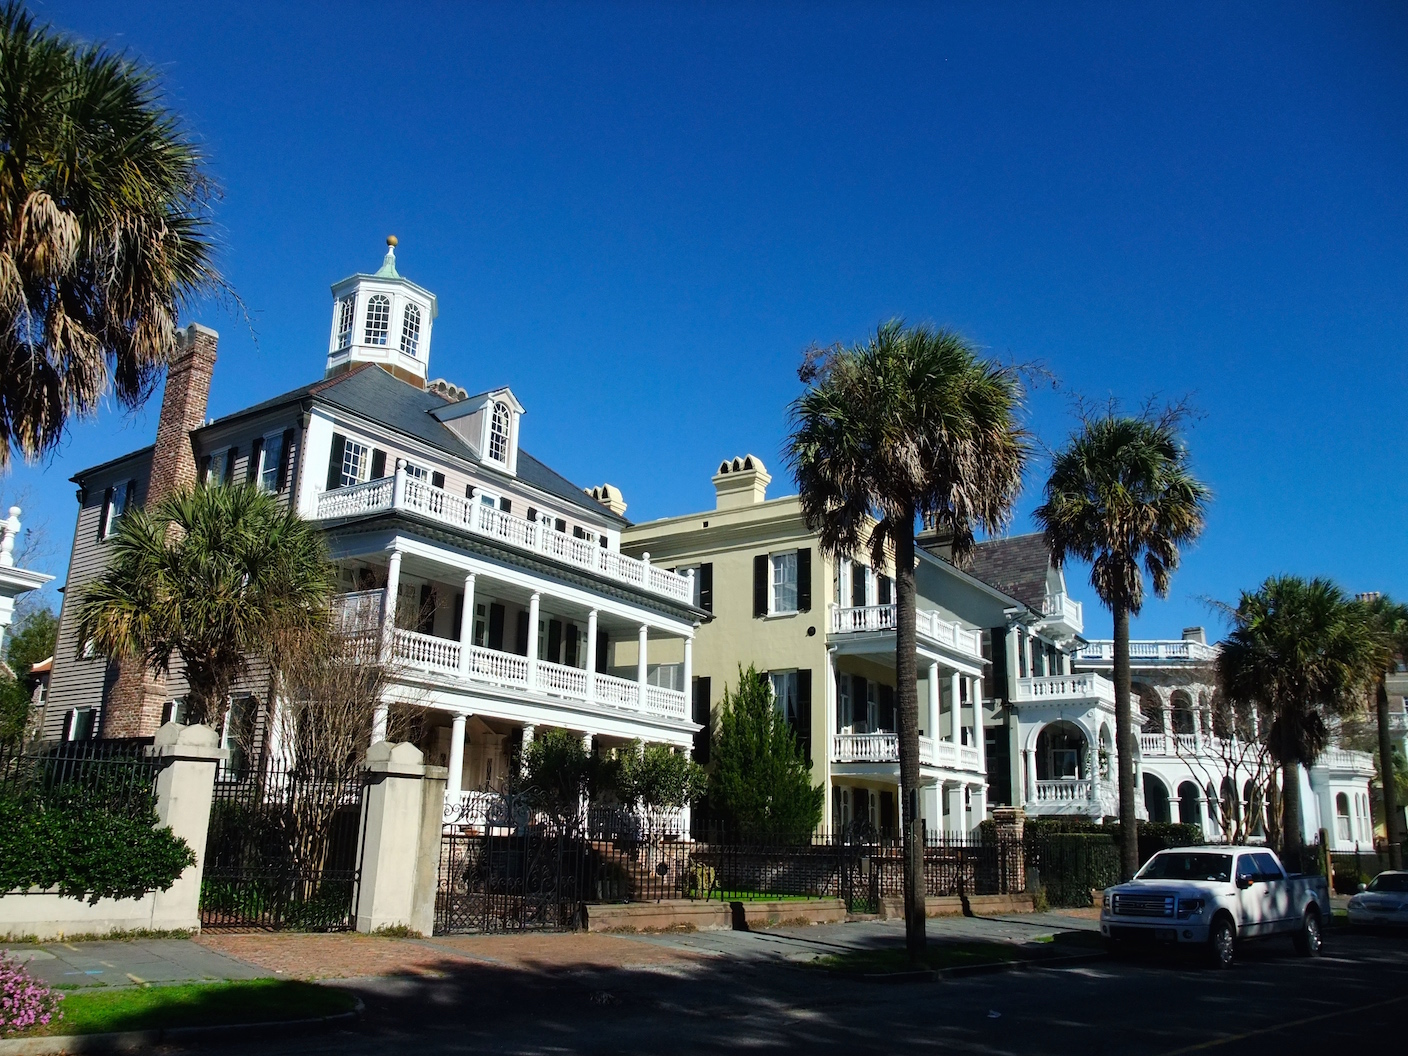 Mansions along The Battery